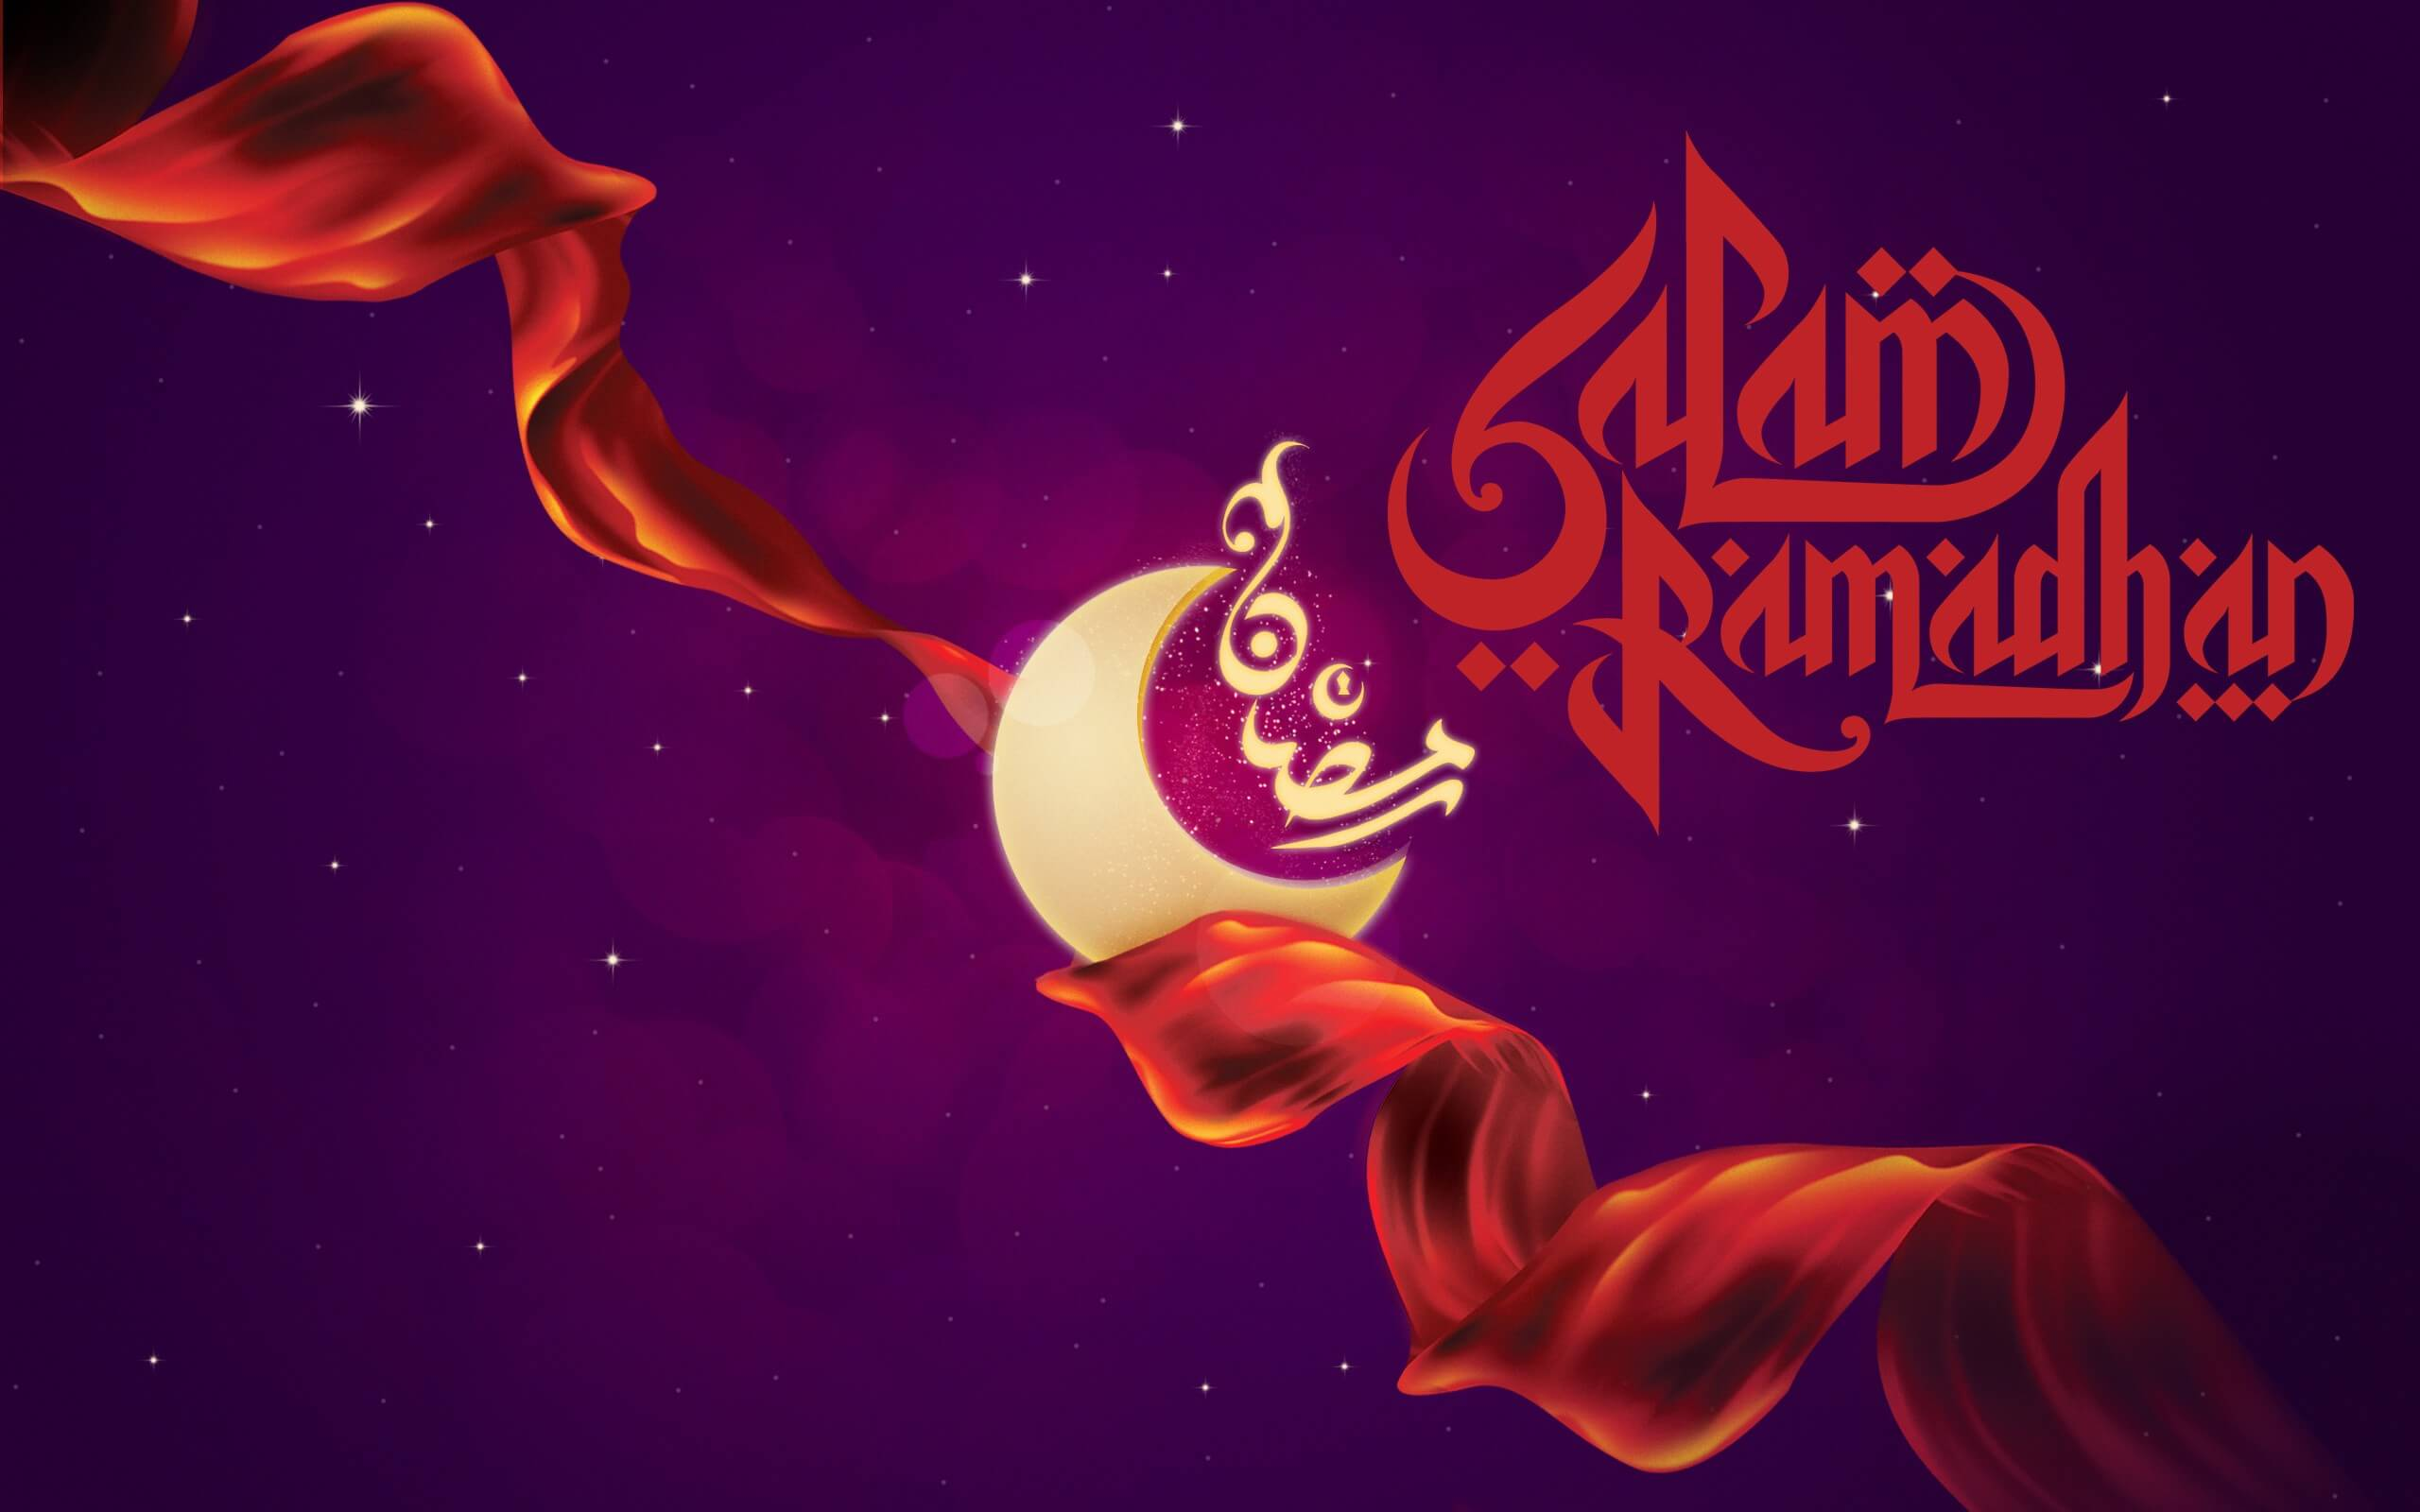 Hd wallpaper ramzan mubarak - Hd Wallpaper Ramzan Mubarak 17